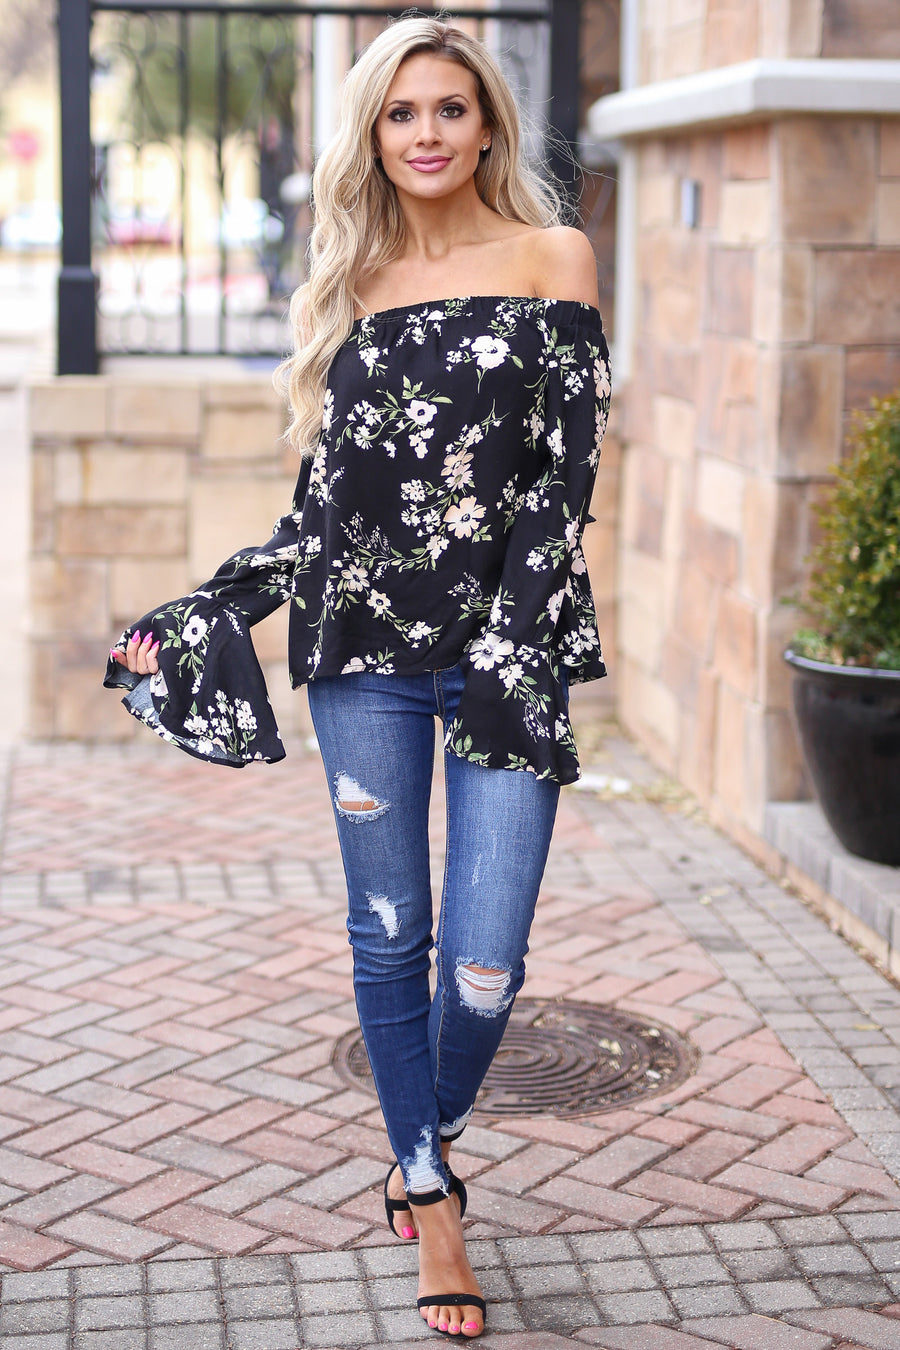 LOVE STITCH Tuscany Gardens Top - Black floral off the shoulder flutter sleeve top, front, Closet Candy Boutique